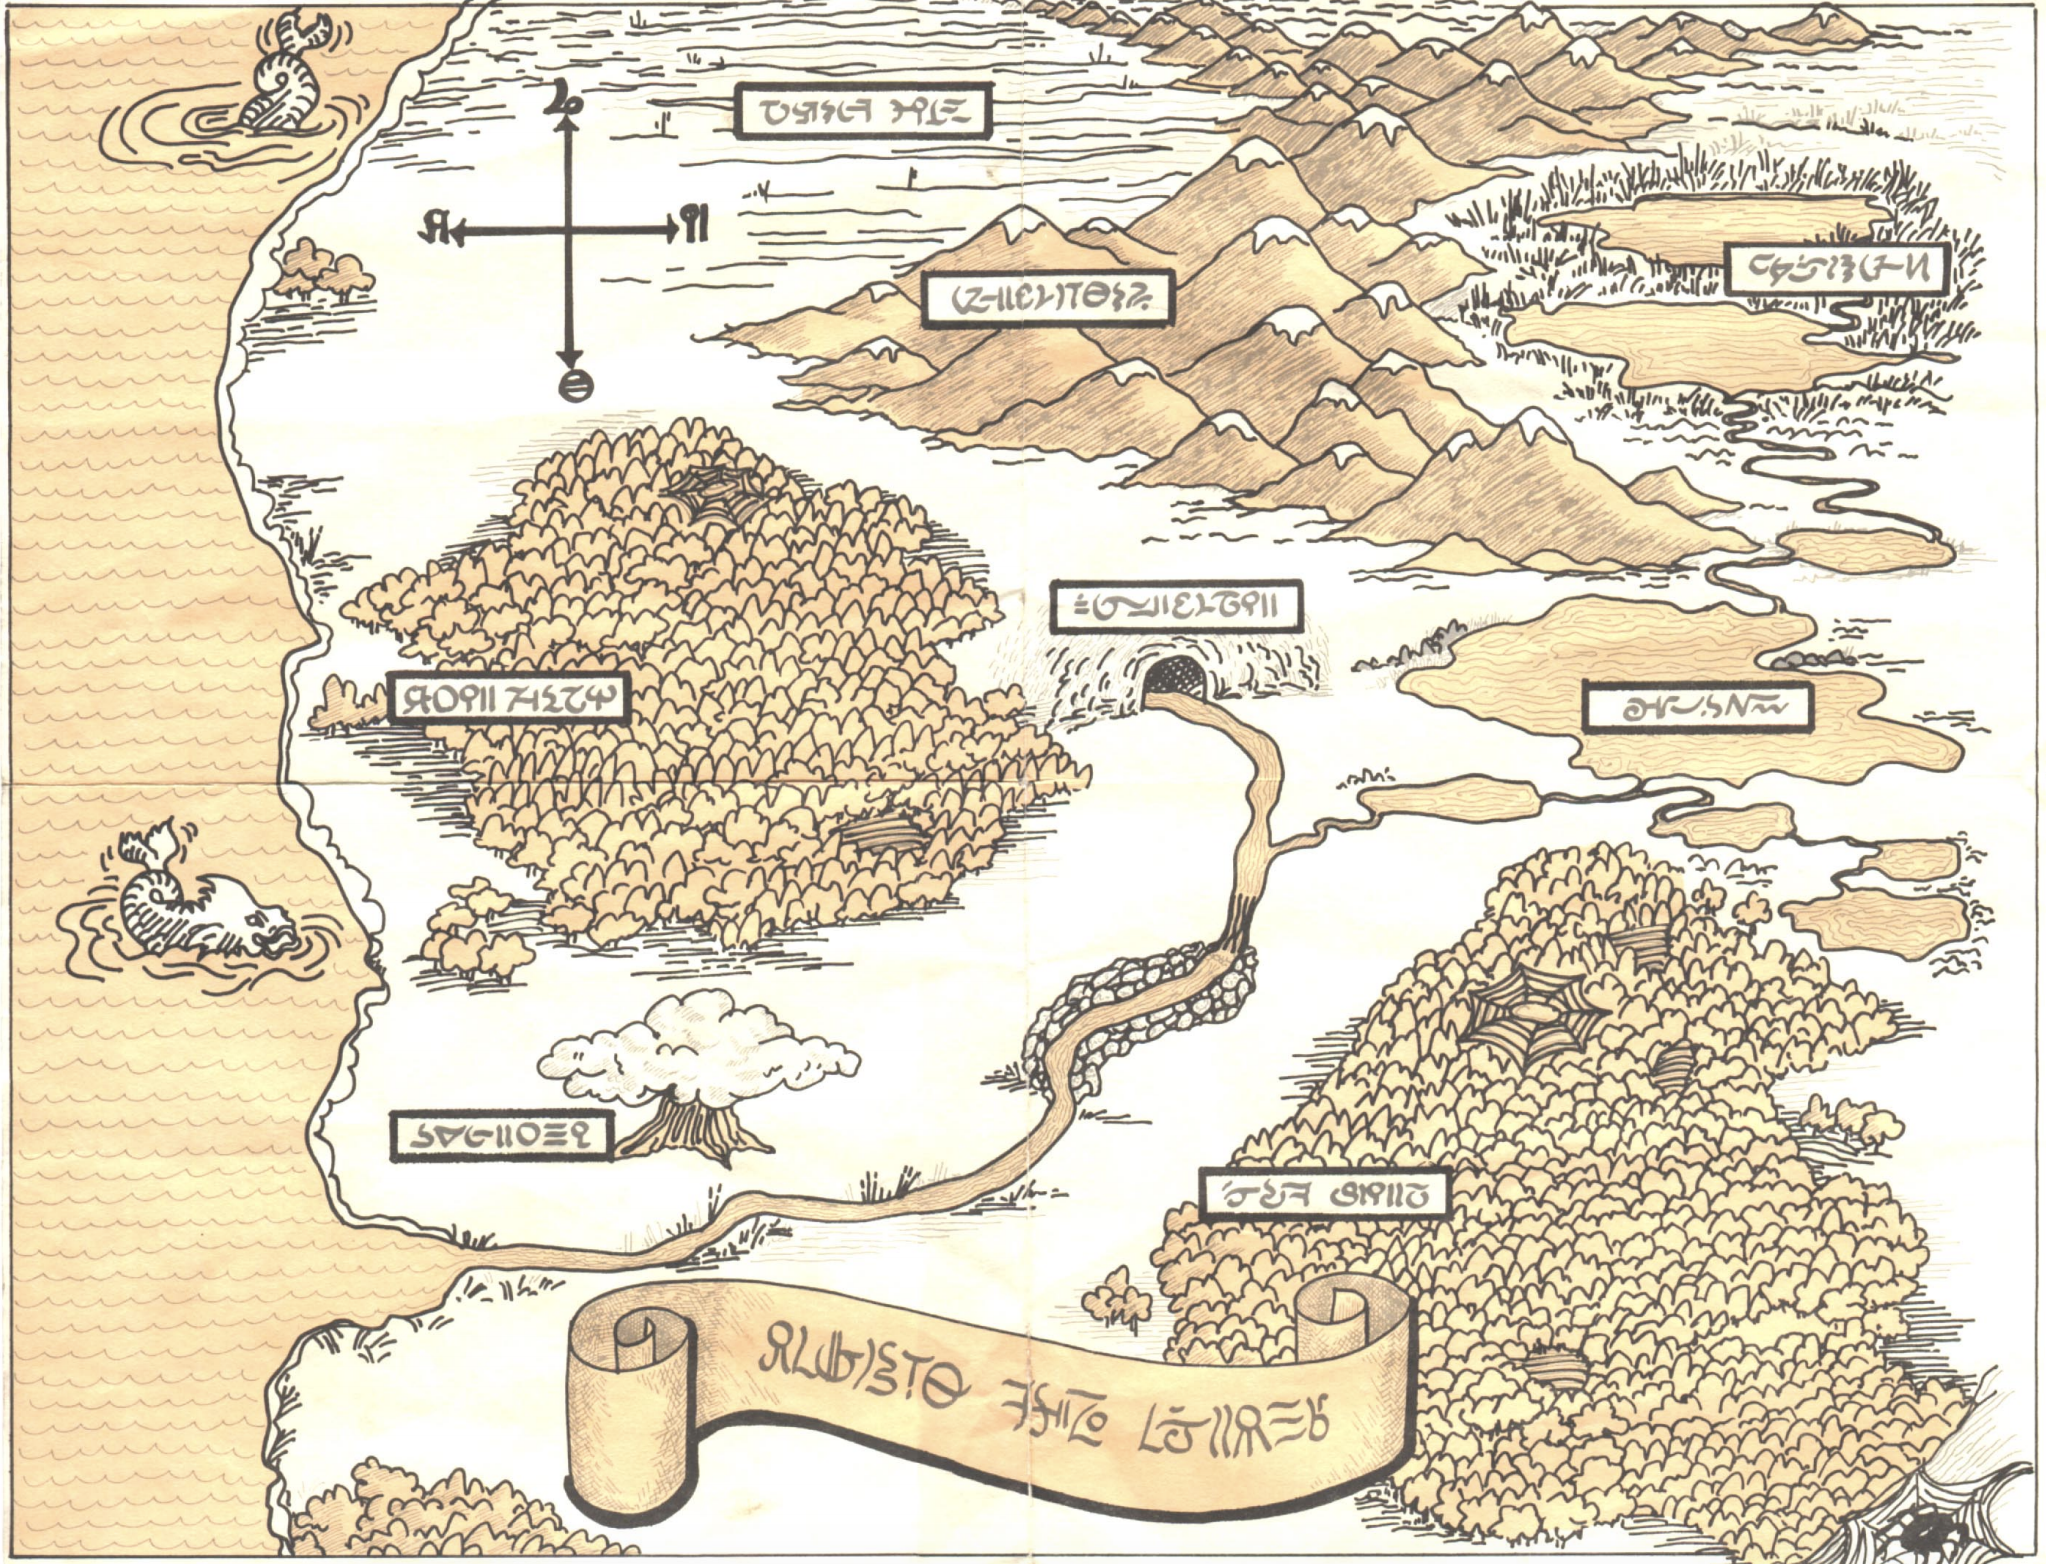 An imaginary map drawing portraying the Great Underground Empire from Zork, drawn in a fantasy style with made up locations.